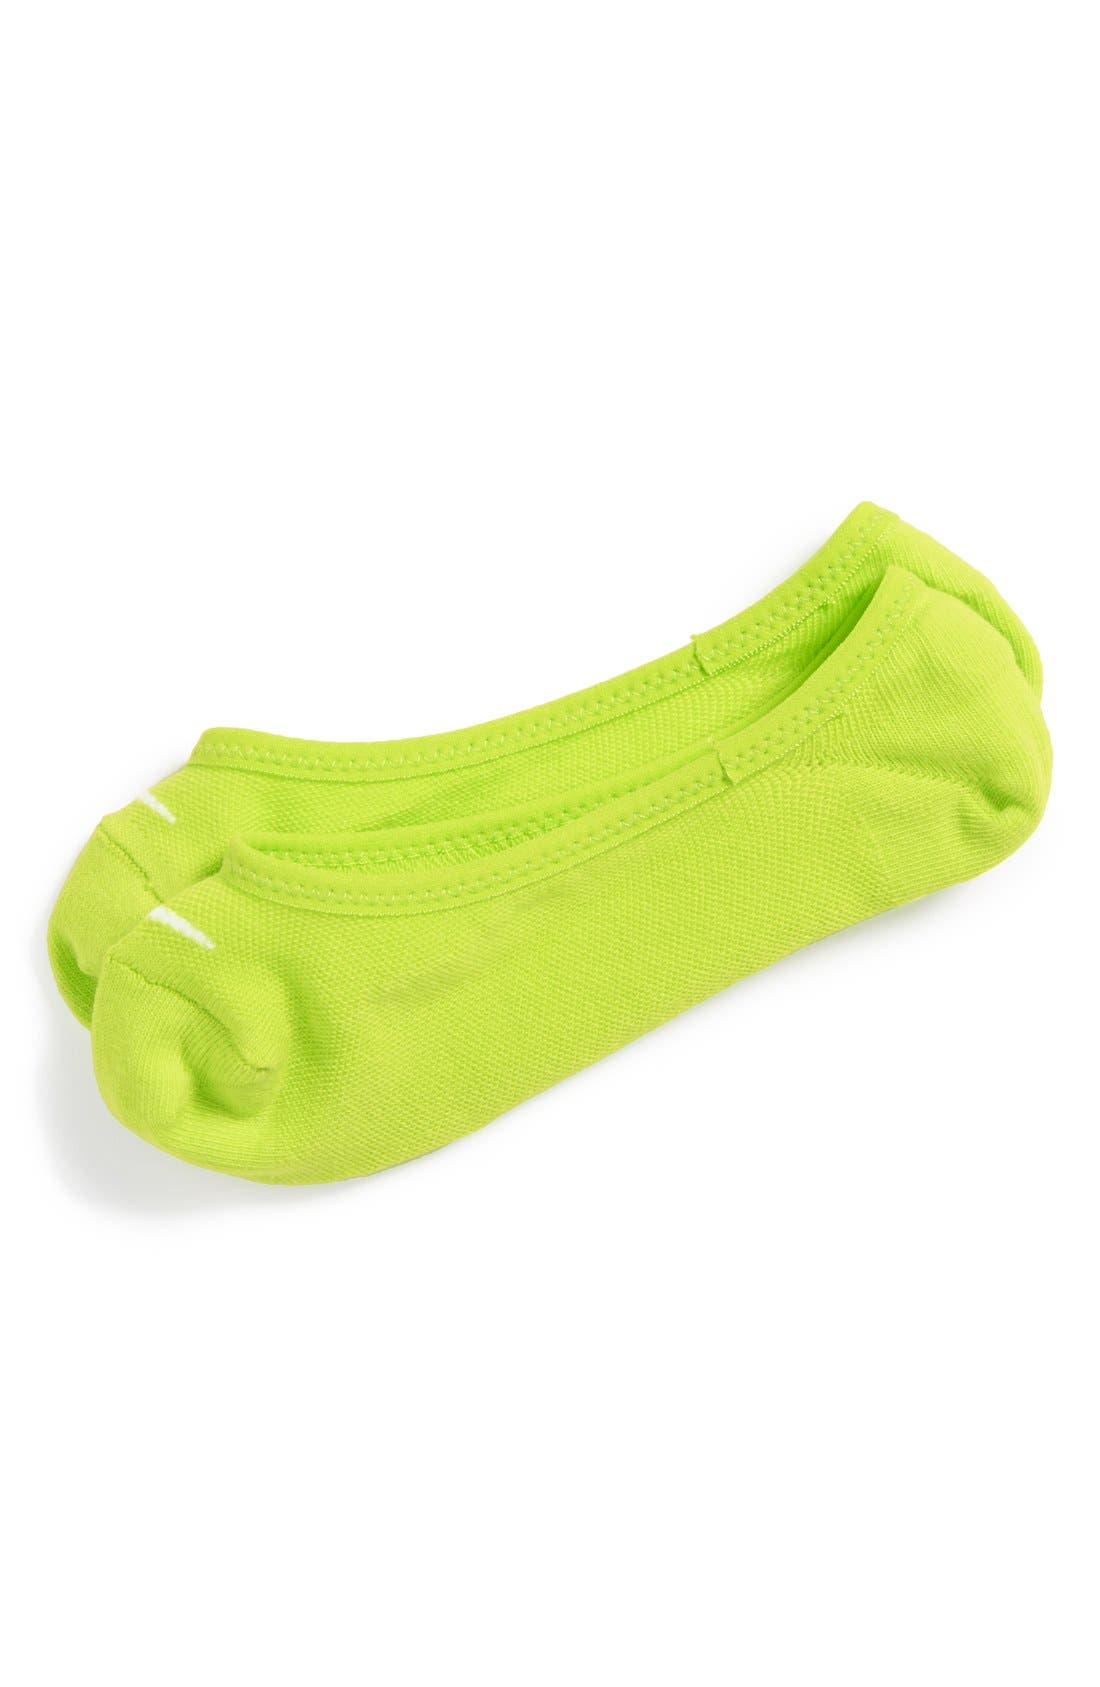 Main Image - Nike 'Studio' No-Show Socks (Women)